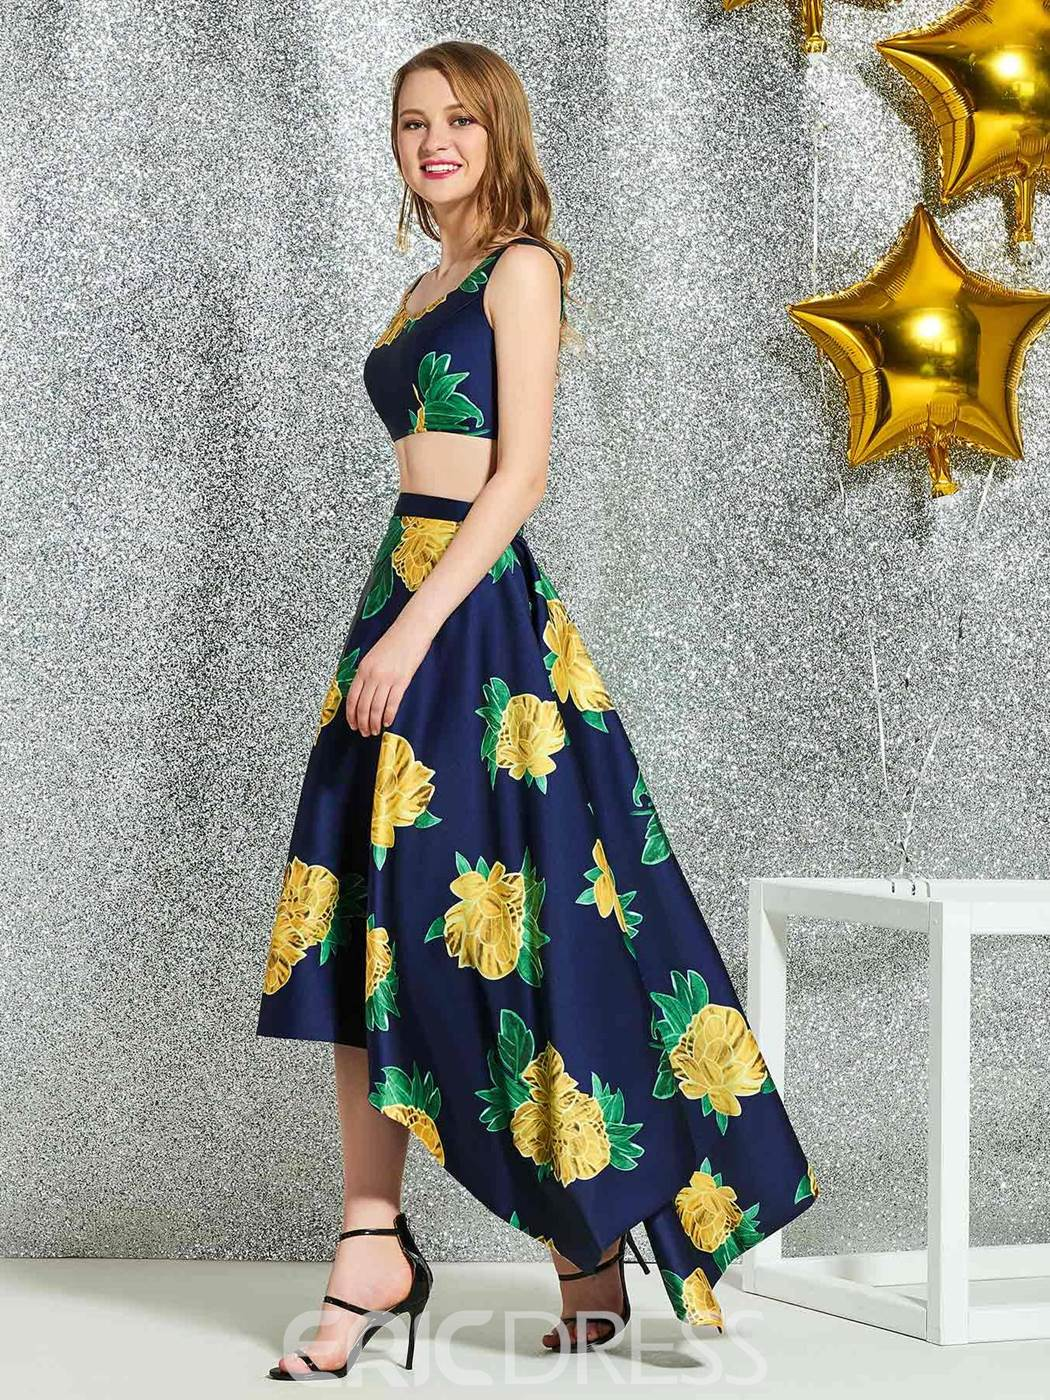 Ericdress Straps Sheath Knee-Length Homecoming Dress 2019